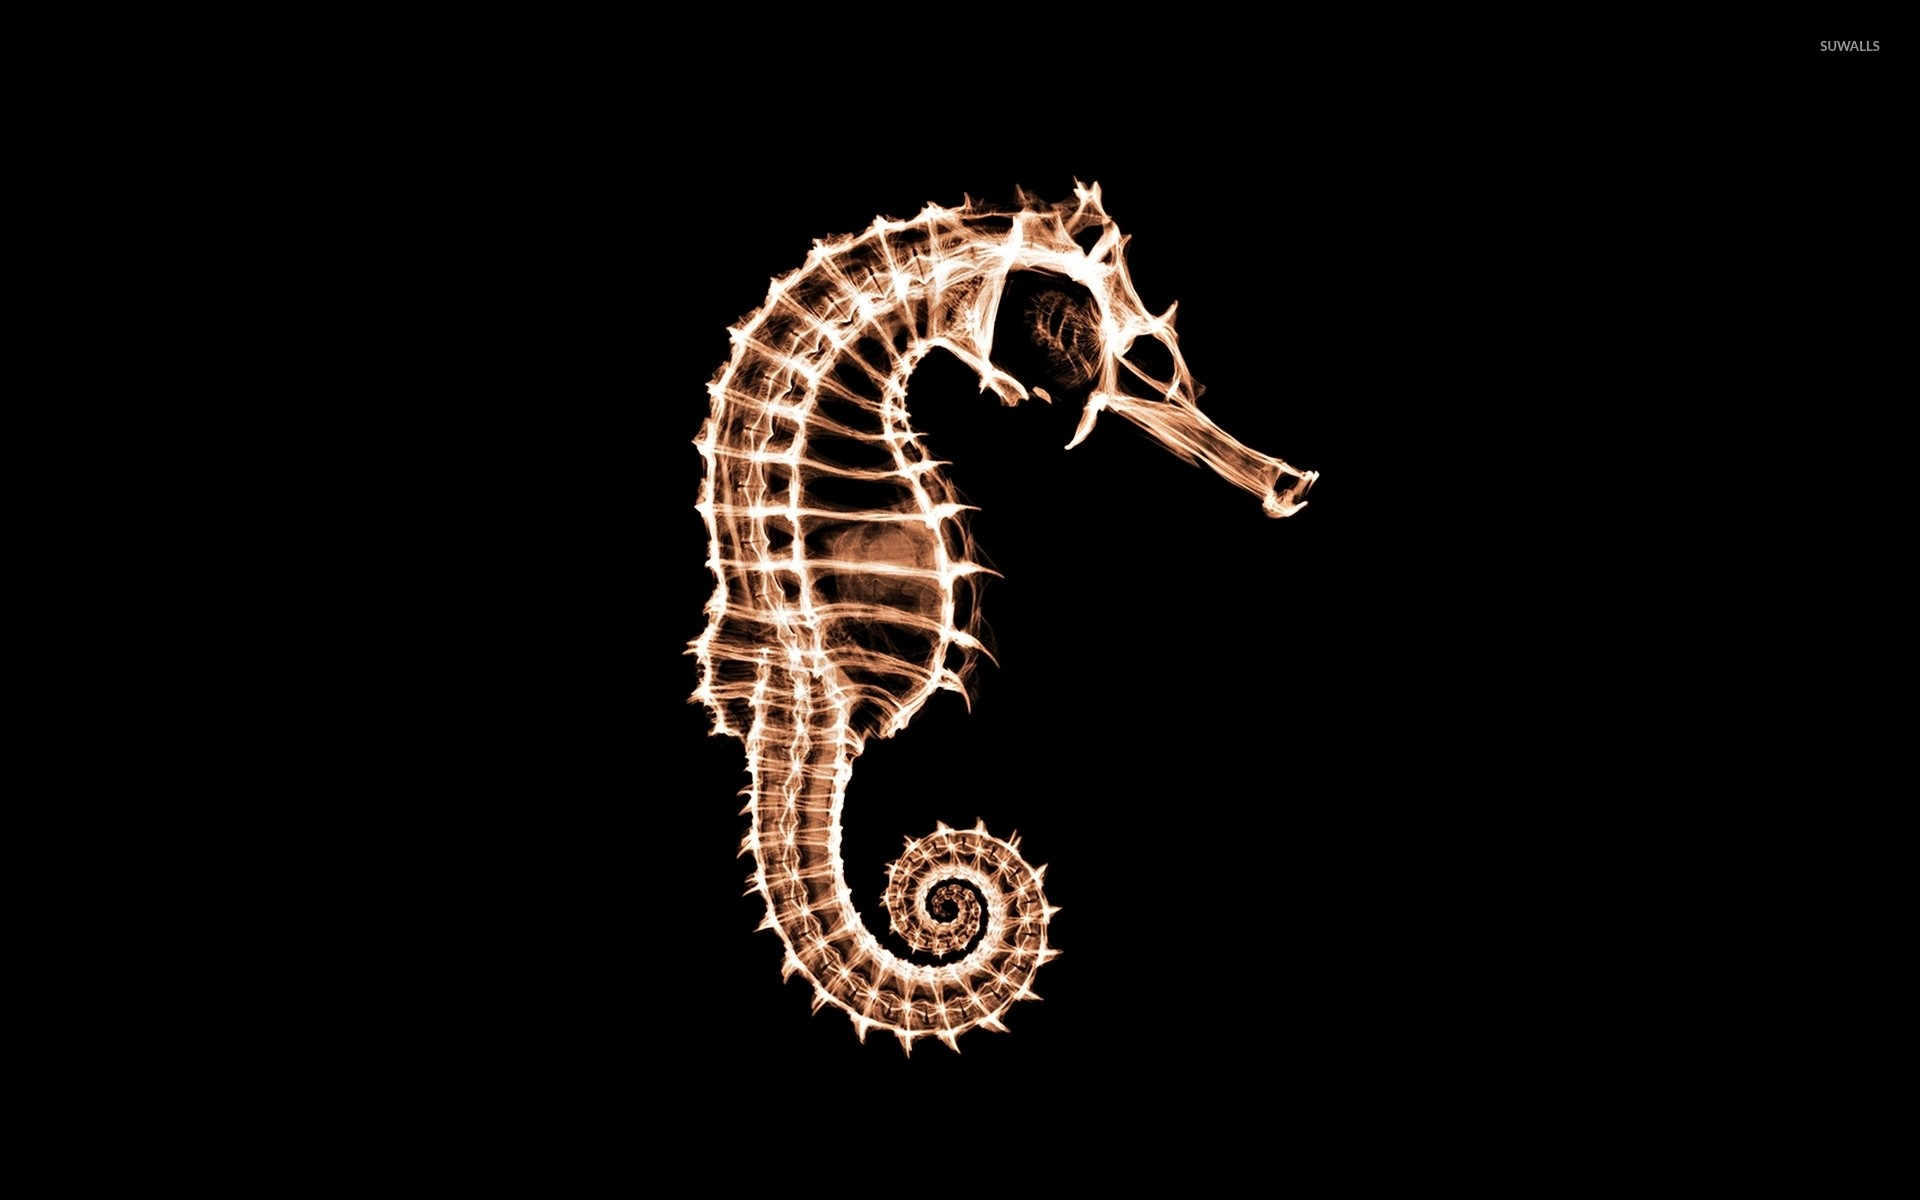 Res: 1920x1200, X-ray of a seahorse wallpaper